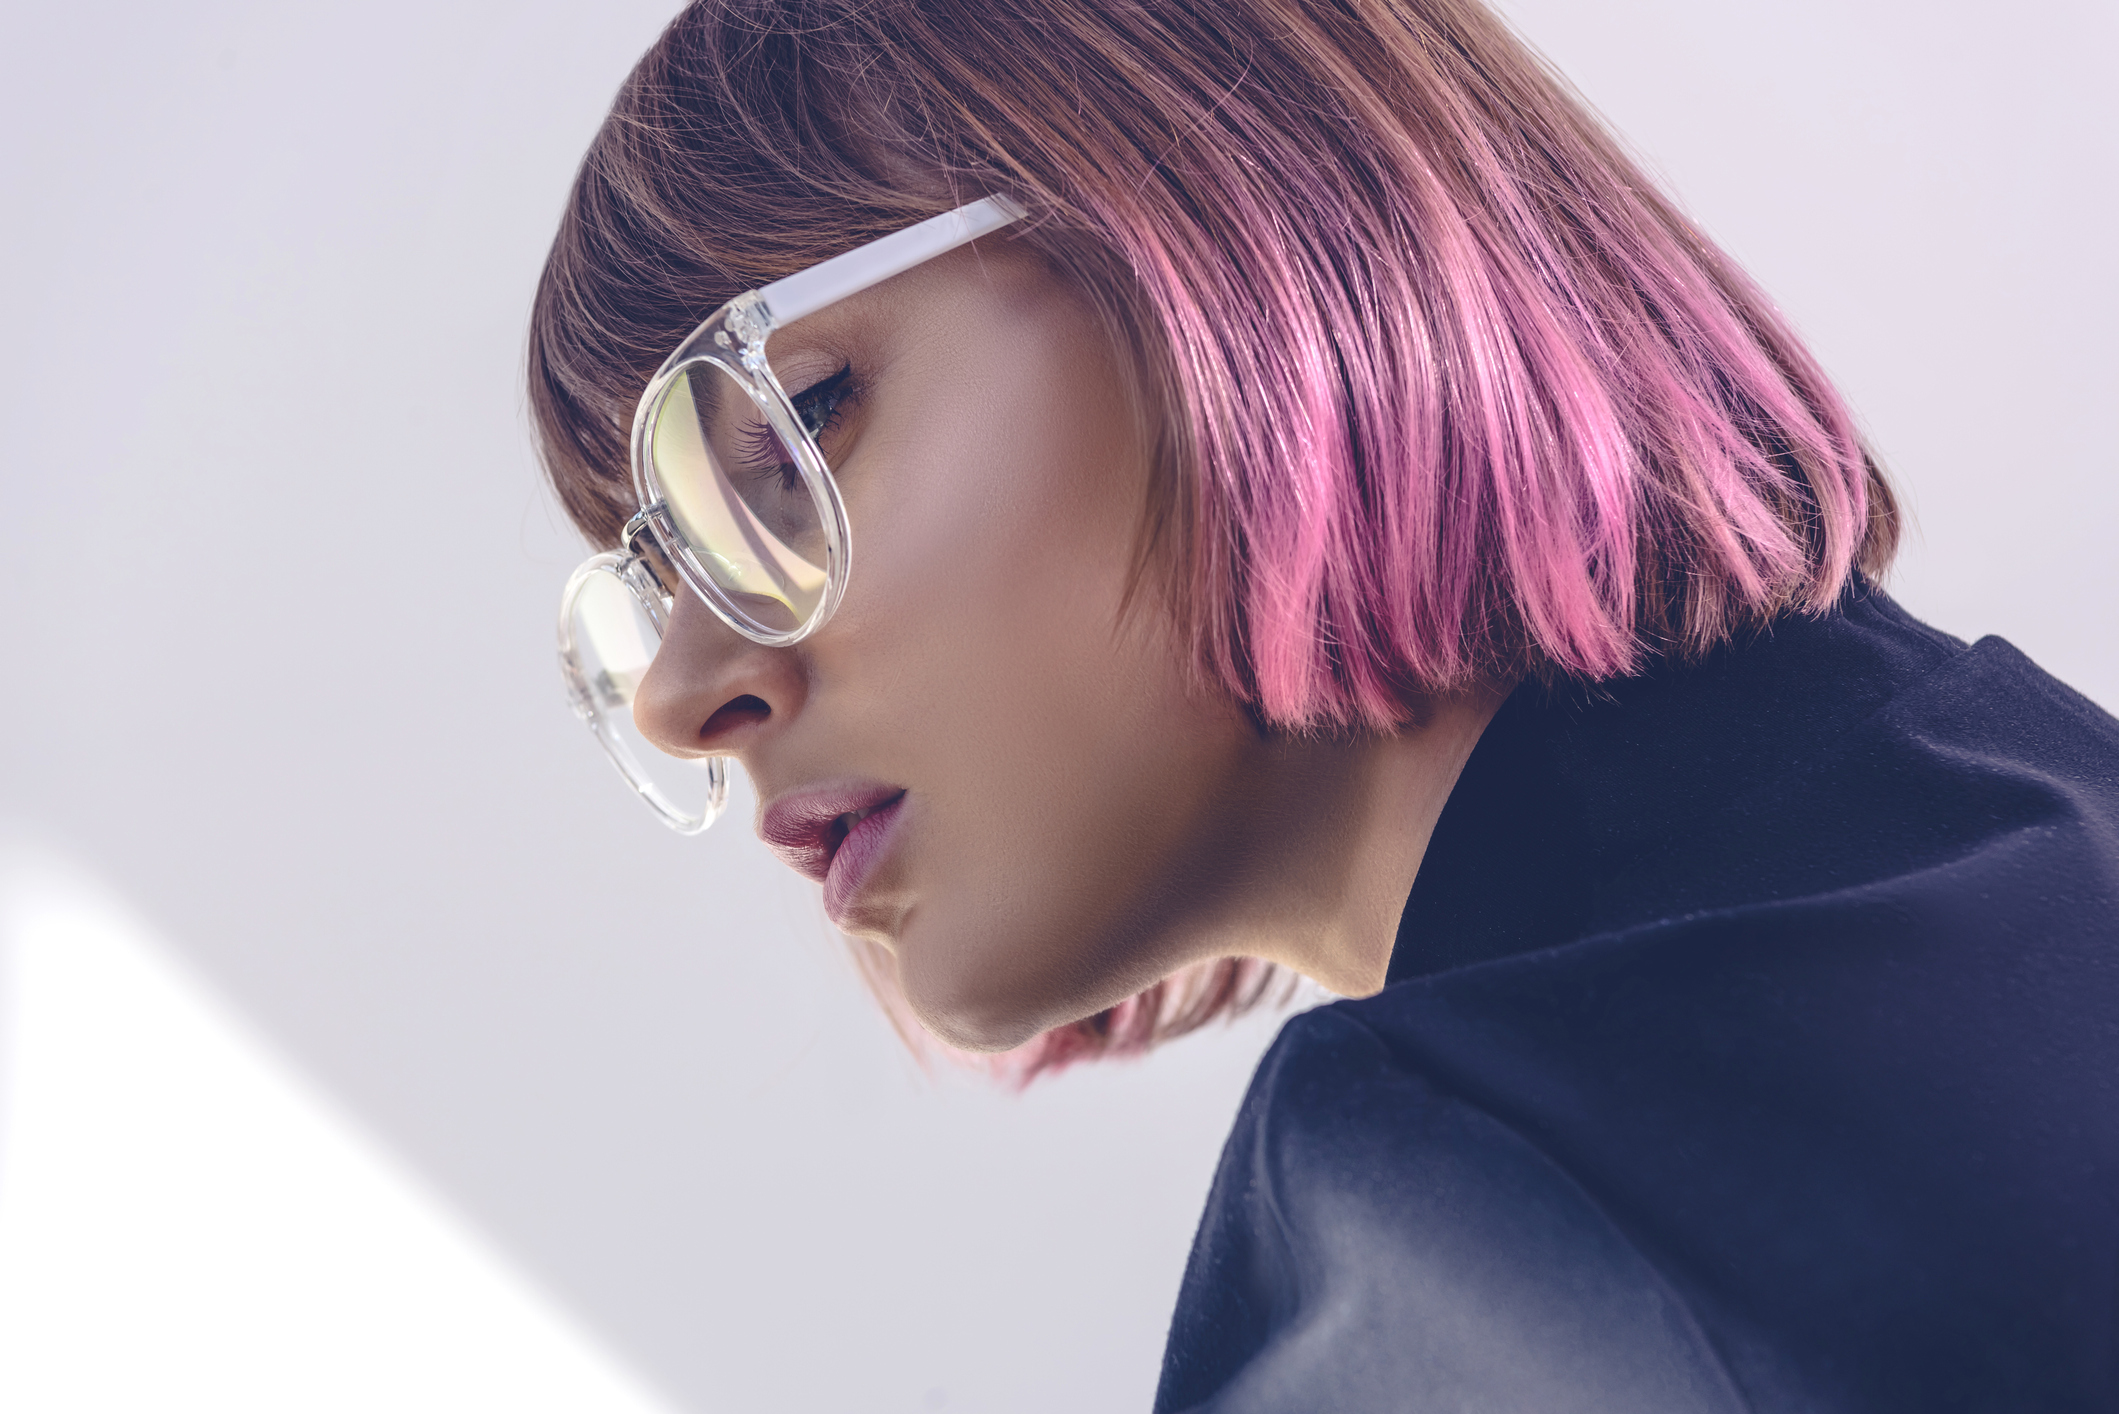 portrait of stylish girl with pink hair and glasses on white